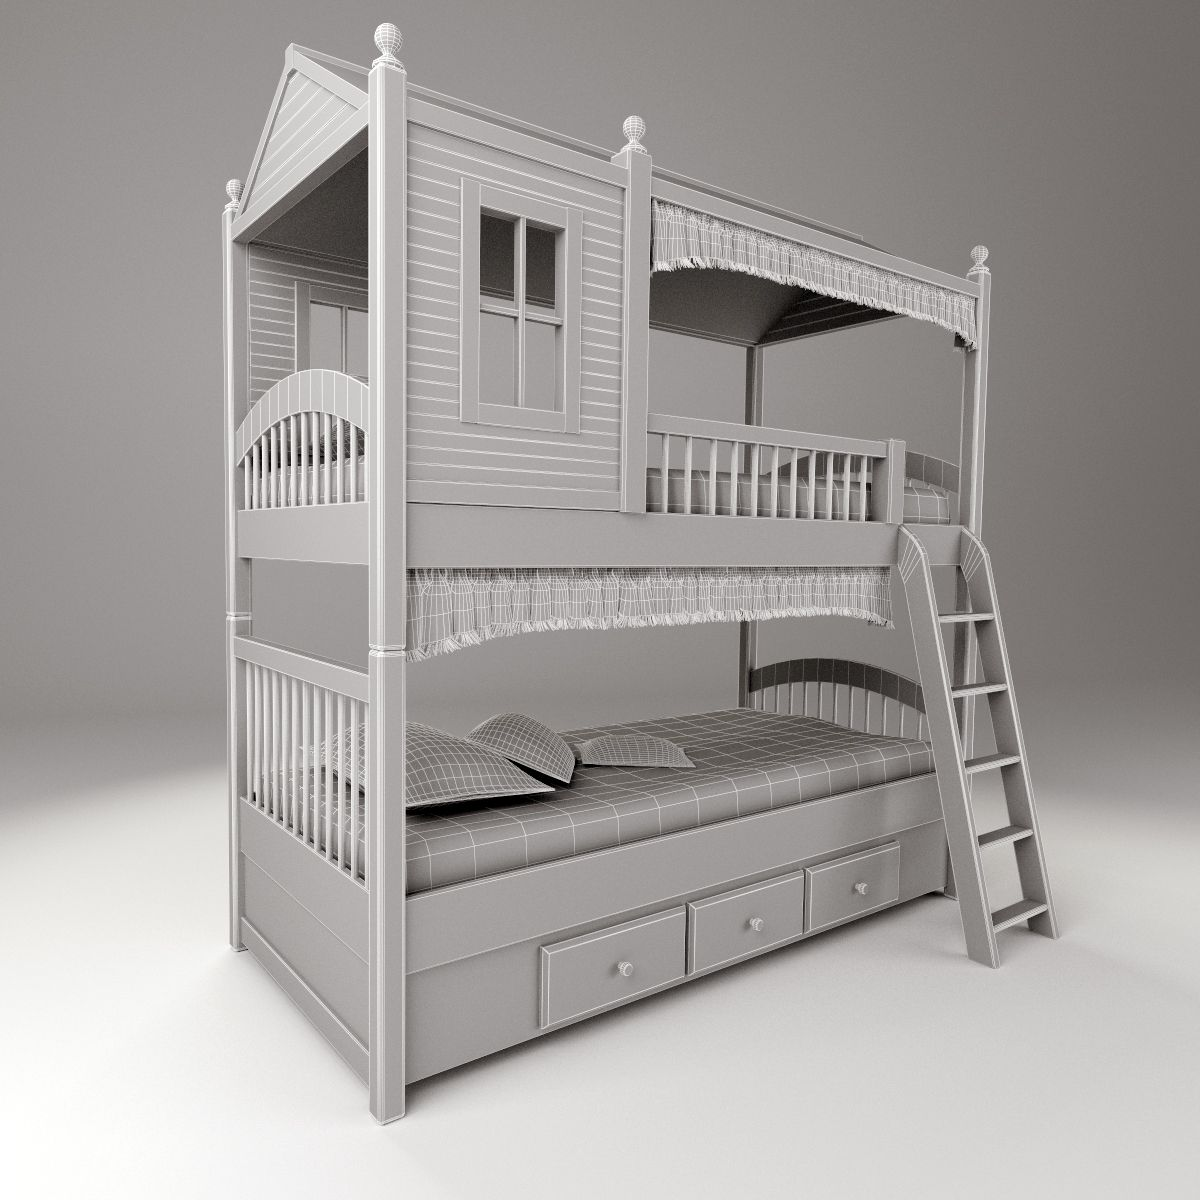 Childrens Bed 49 With Images Childrens Beds Bed Nursery Bedding